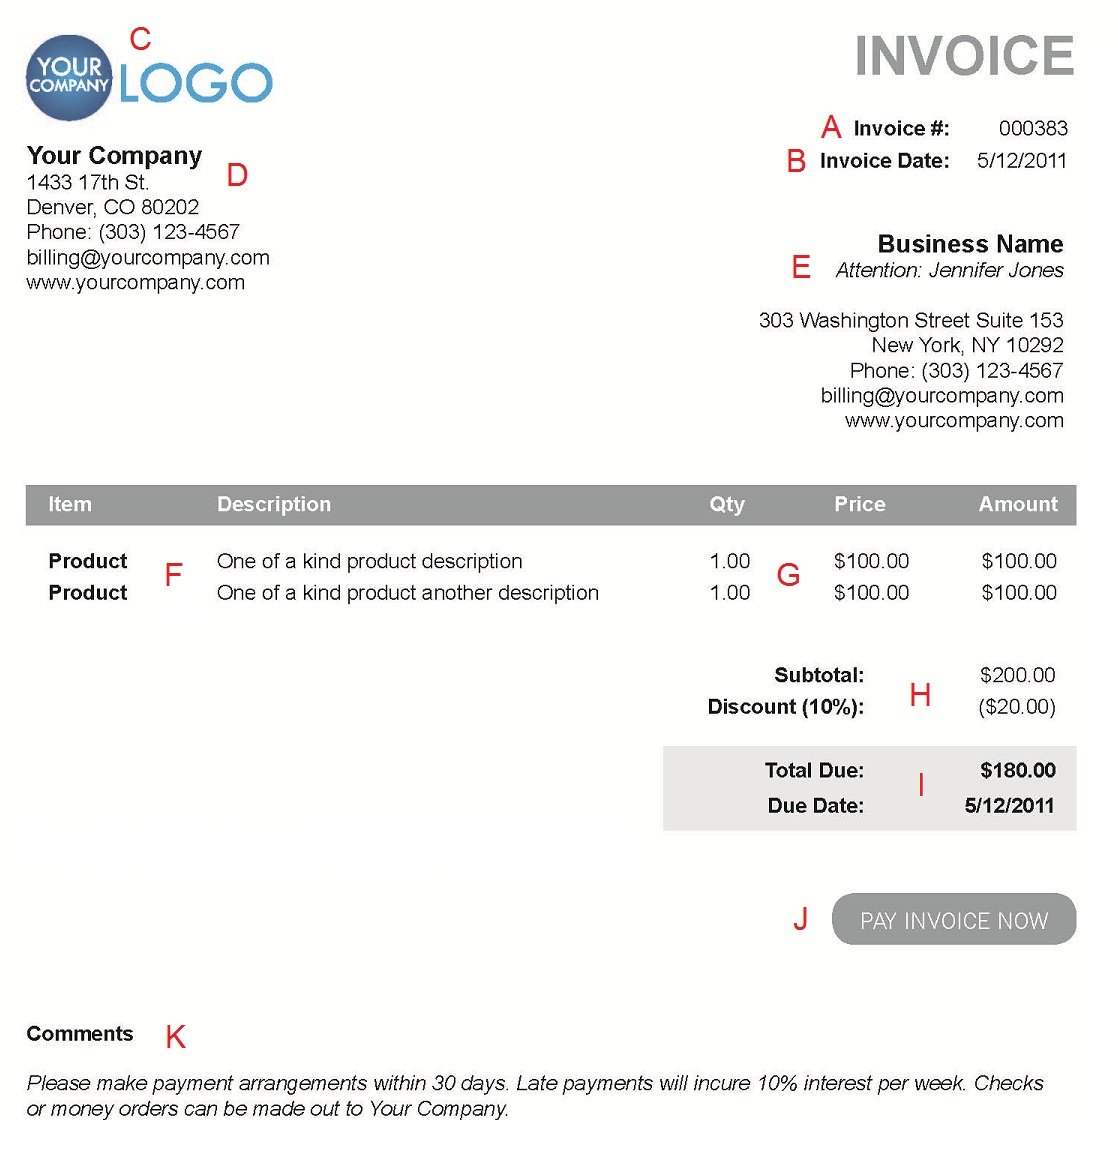 Totallocalus  Scenic The  Different Sections Of An Electronic Payment Invoice With Luxury A  With Amusing Billing Invoice Sample Also Template Invoices In Addition Acura Mdx Invoice Price And Invoice Aging Report As Well As Invoice Finance Factoring Additionally Invoicing Terms From Paysimplecom With Totallocalus  Luxury The  Different Sections Of An Electronic Payment Invoice With Amusing A  And Scenic Billing Invoice Sample Also Template Invoices In Addition Acura Mdx Invoice Price From Paysimplecom